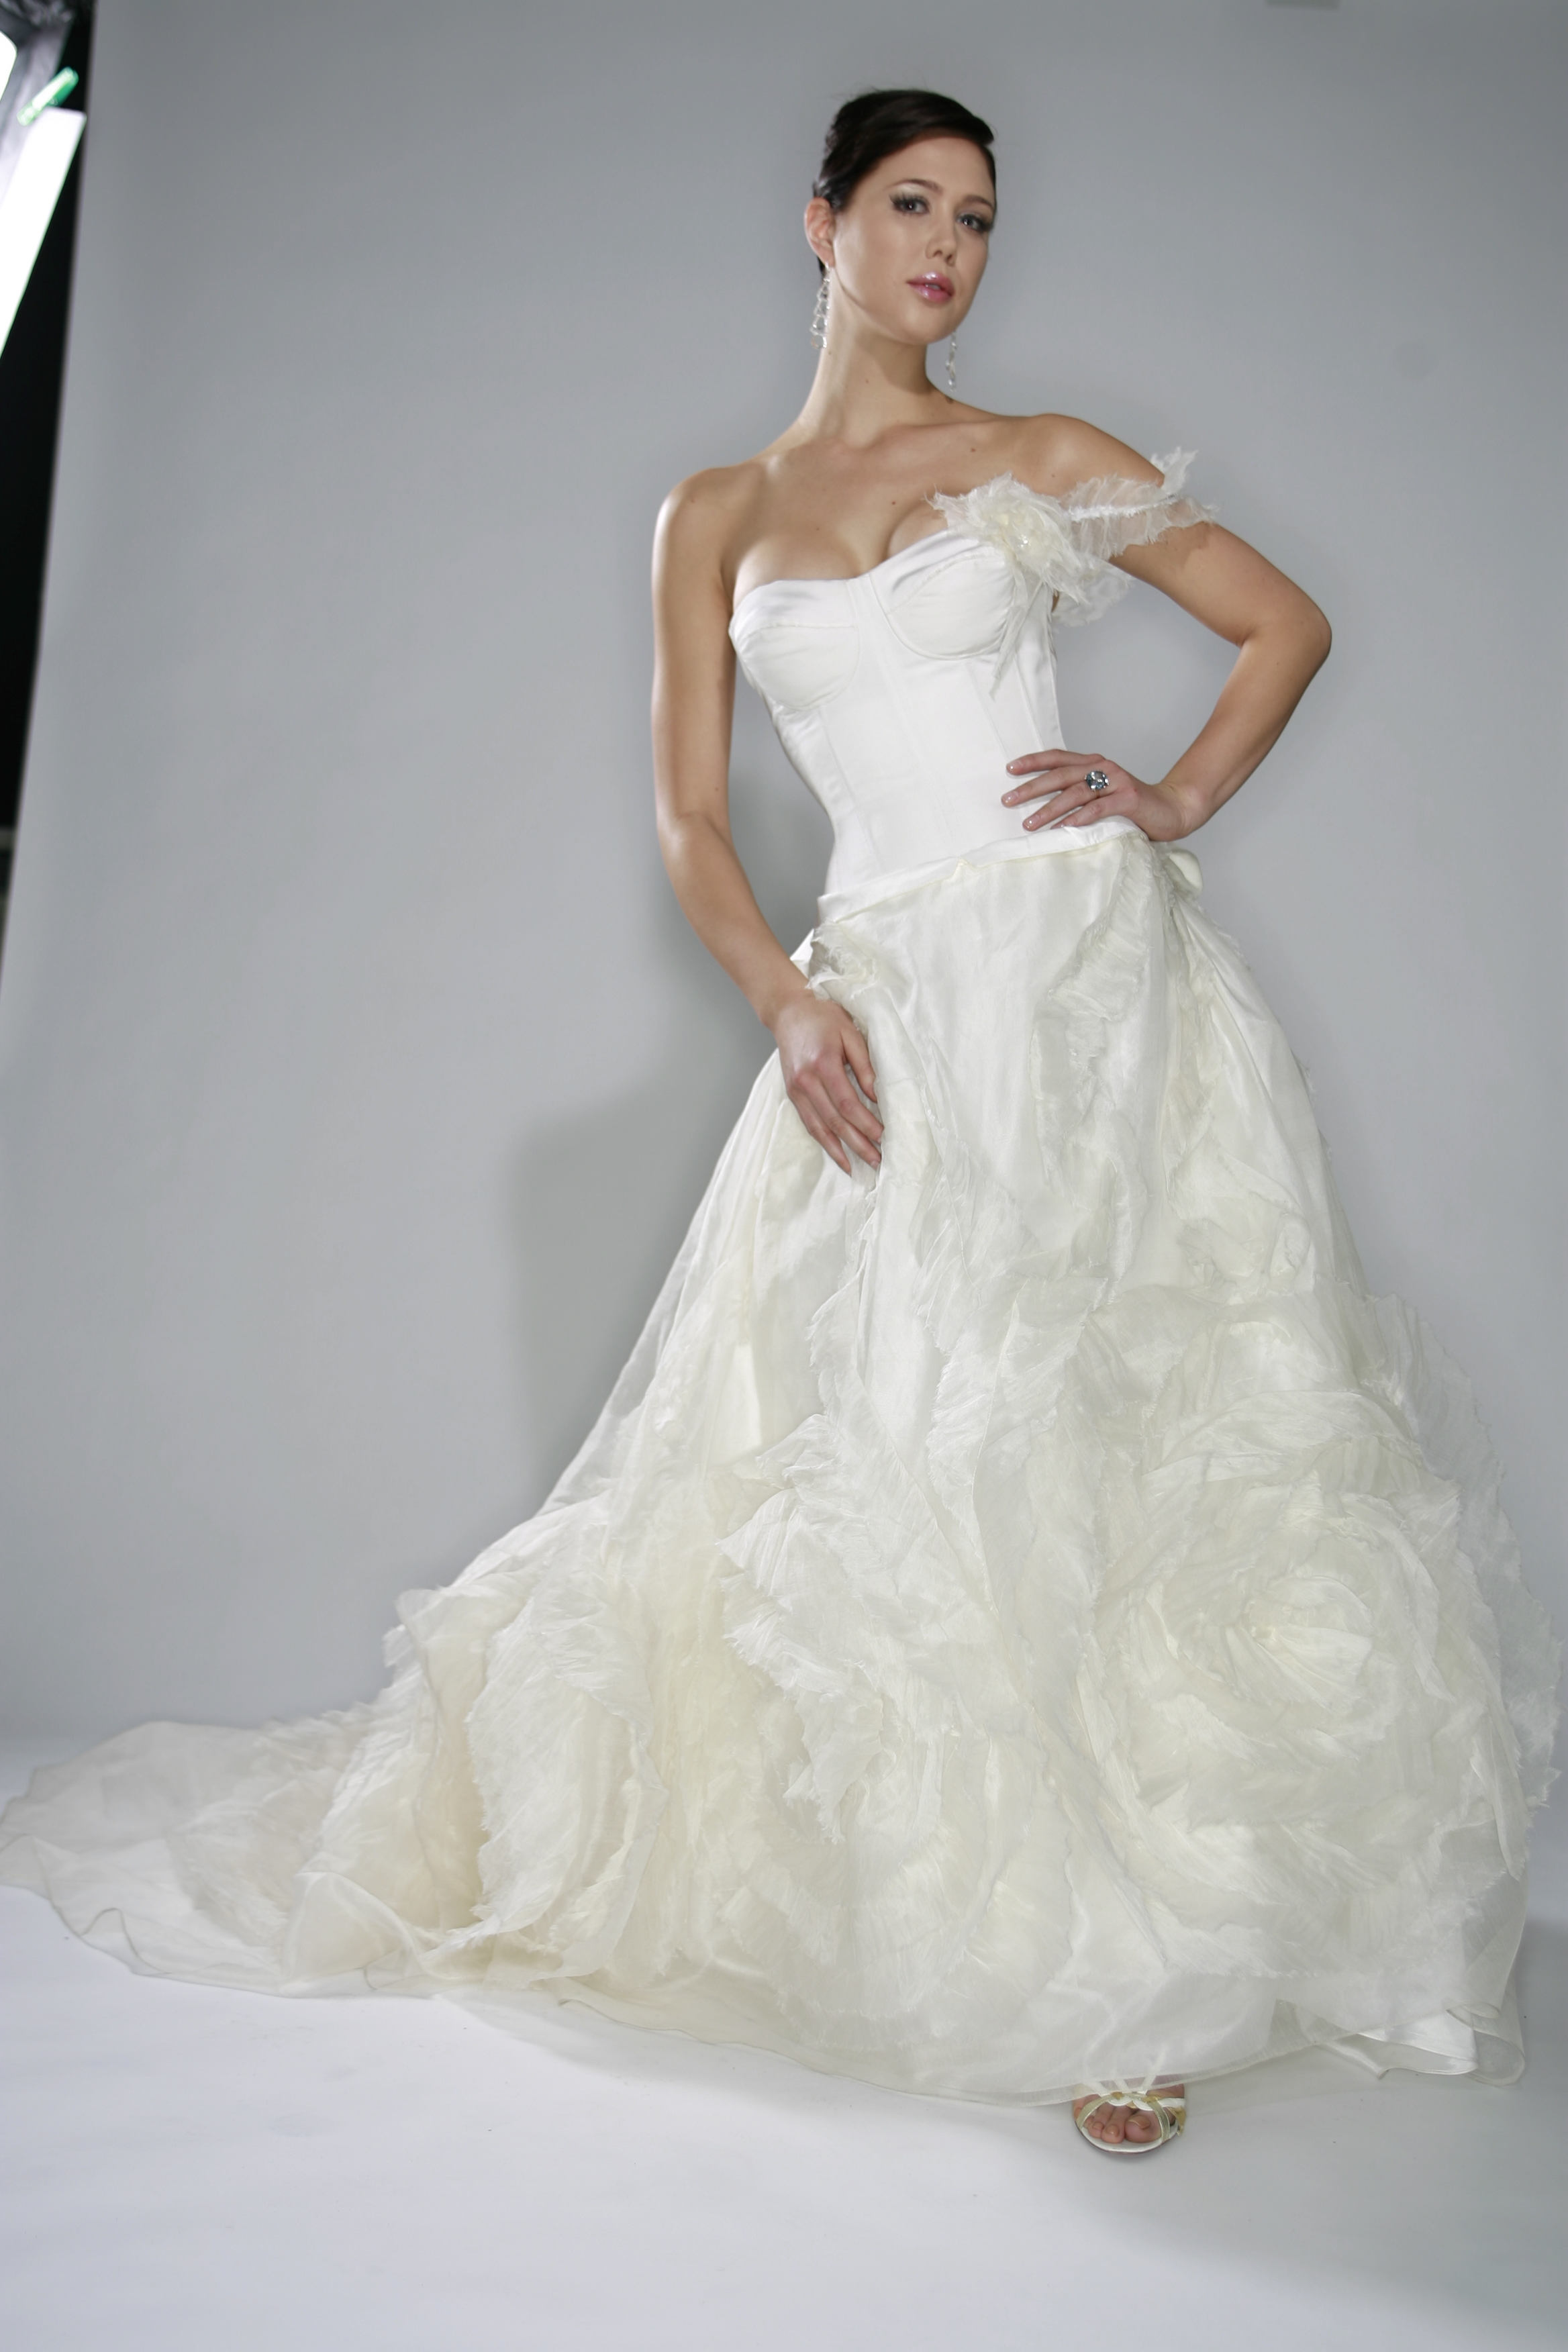 Lamour_spring_2010-white-wedding-dress_0.original